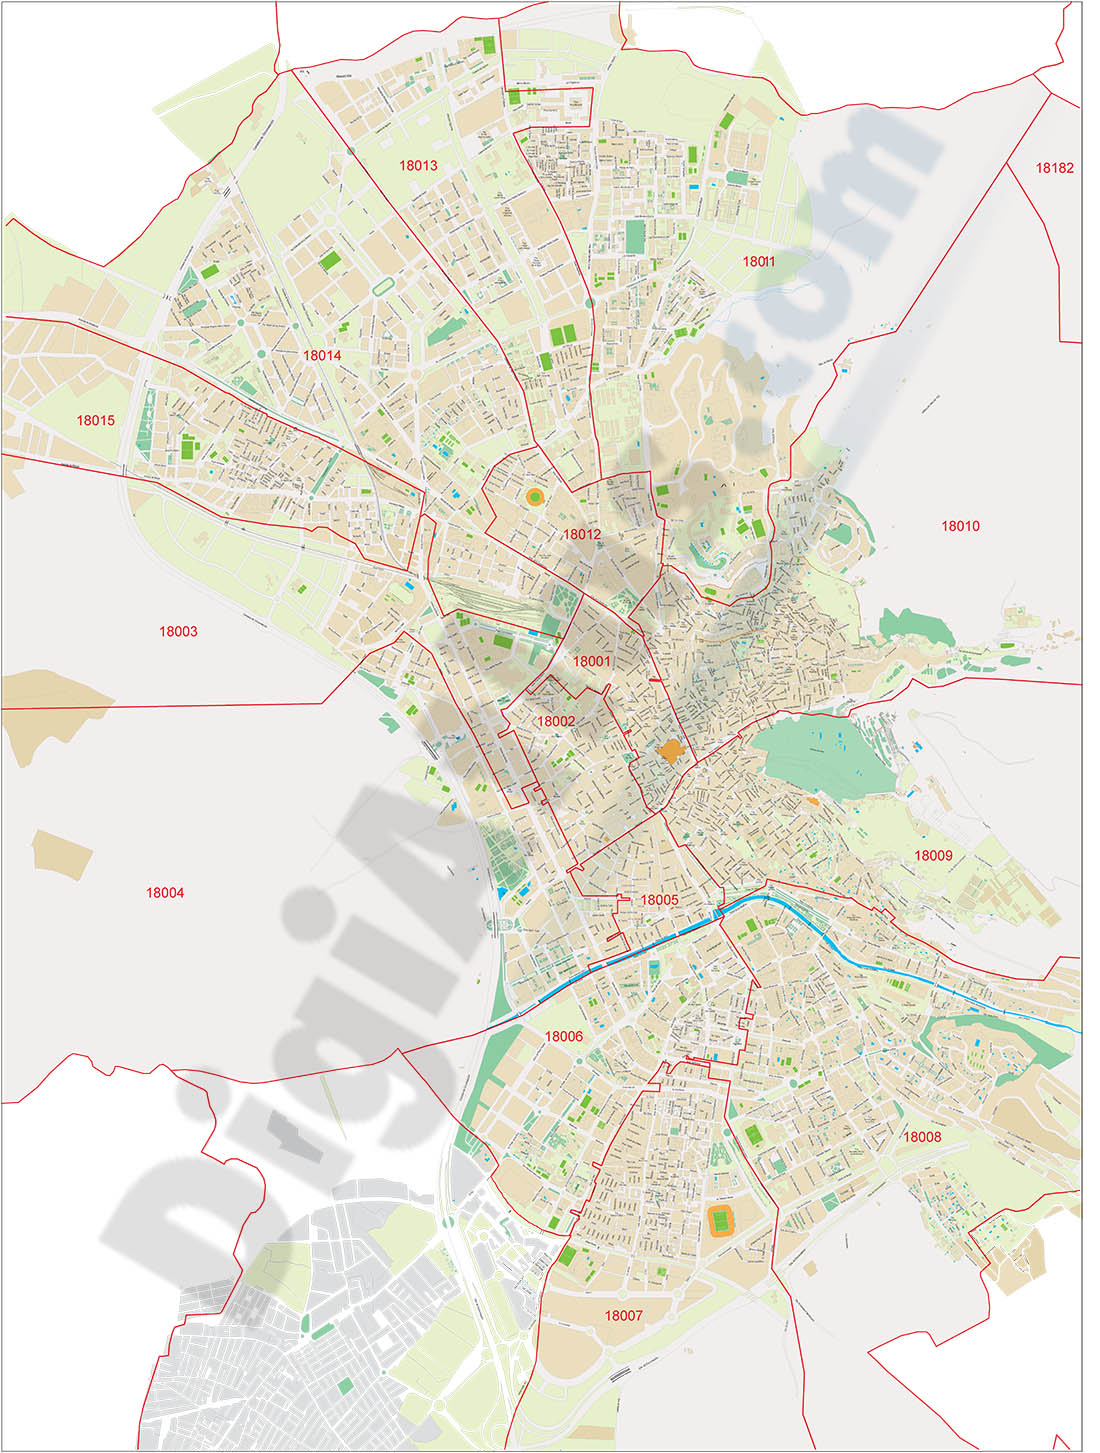 Granada - city map with postcodes